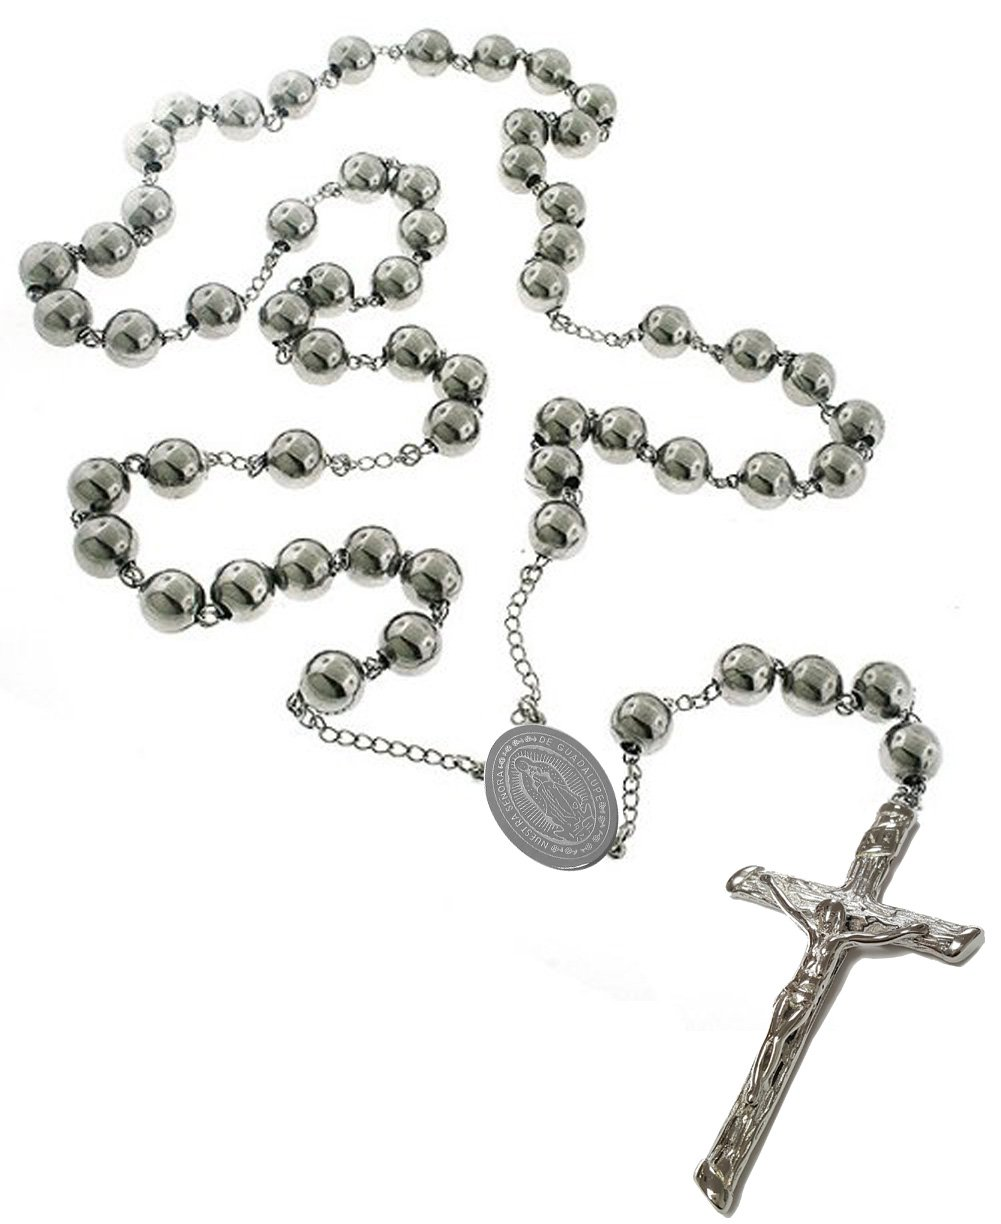 Unique Virgen de Guadalupe Catholic Rosary Stainless Steel Beads 24'' Necklace with Crucifix and Medal(24 Inches)